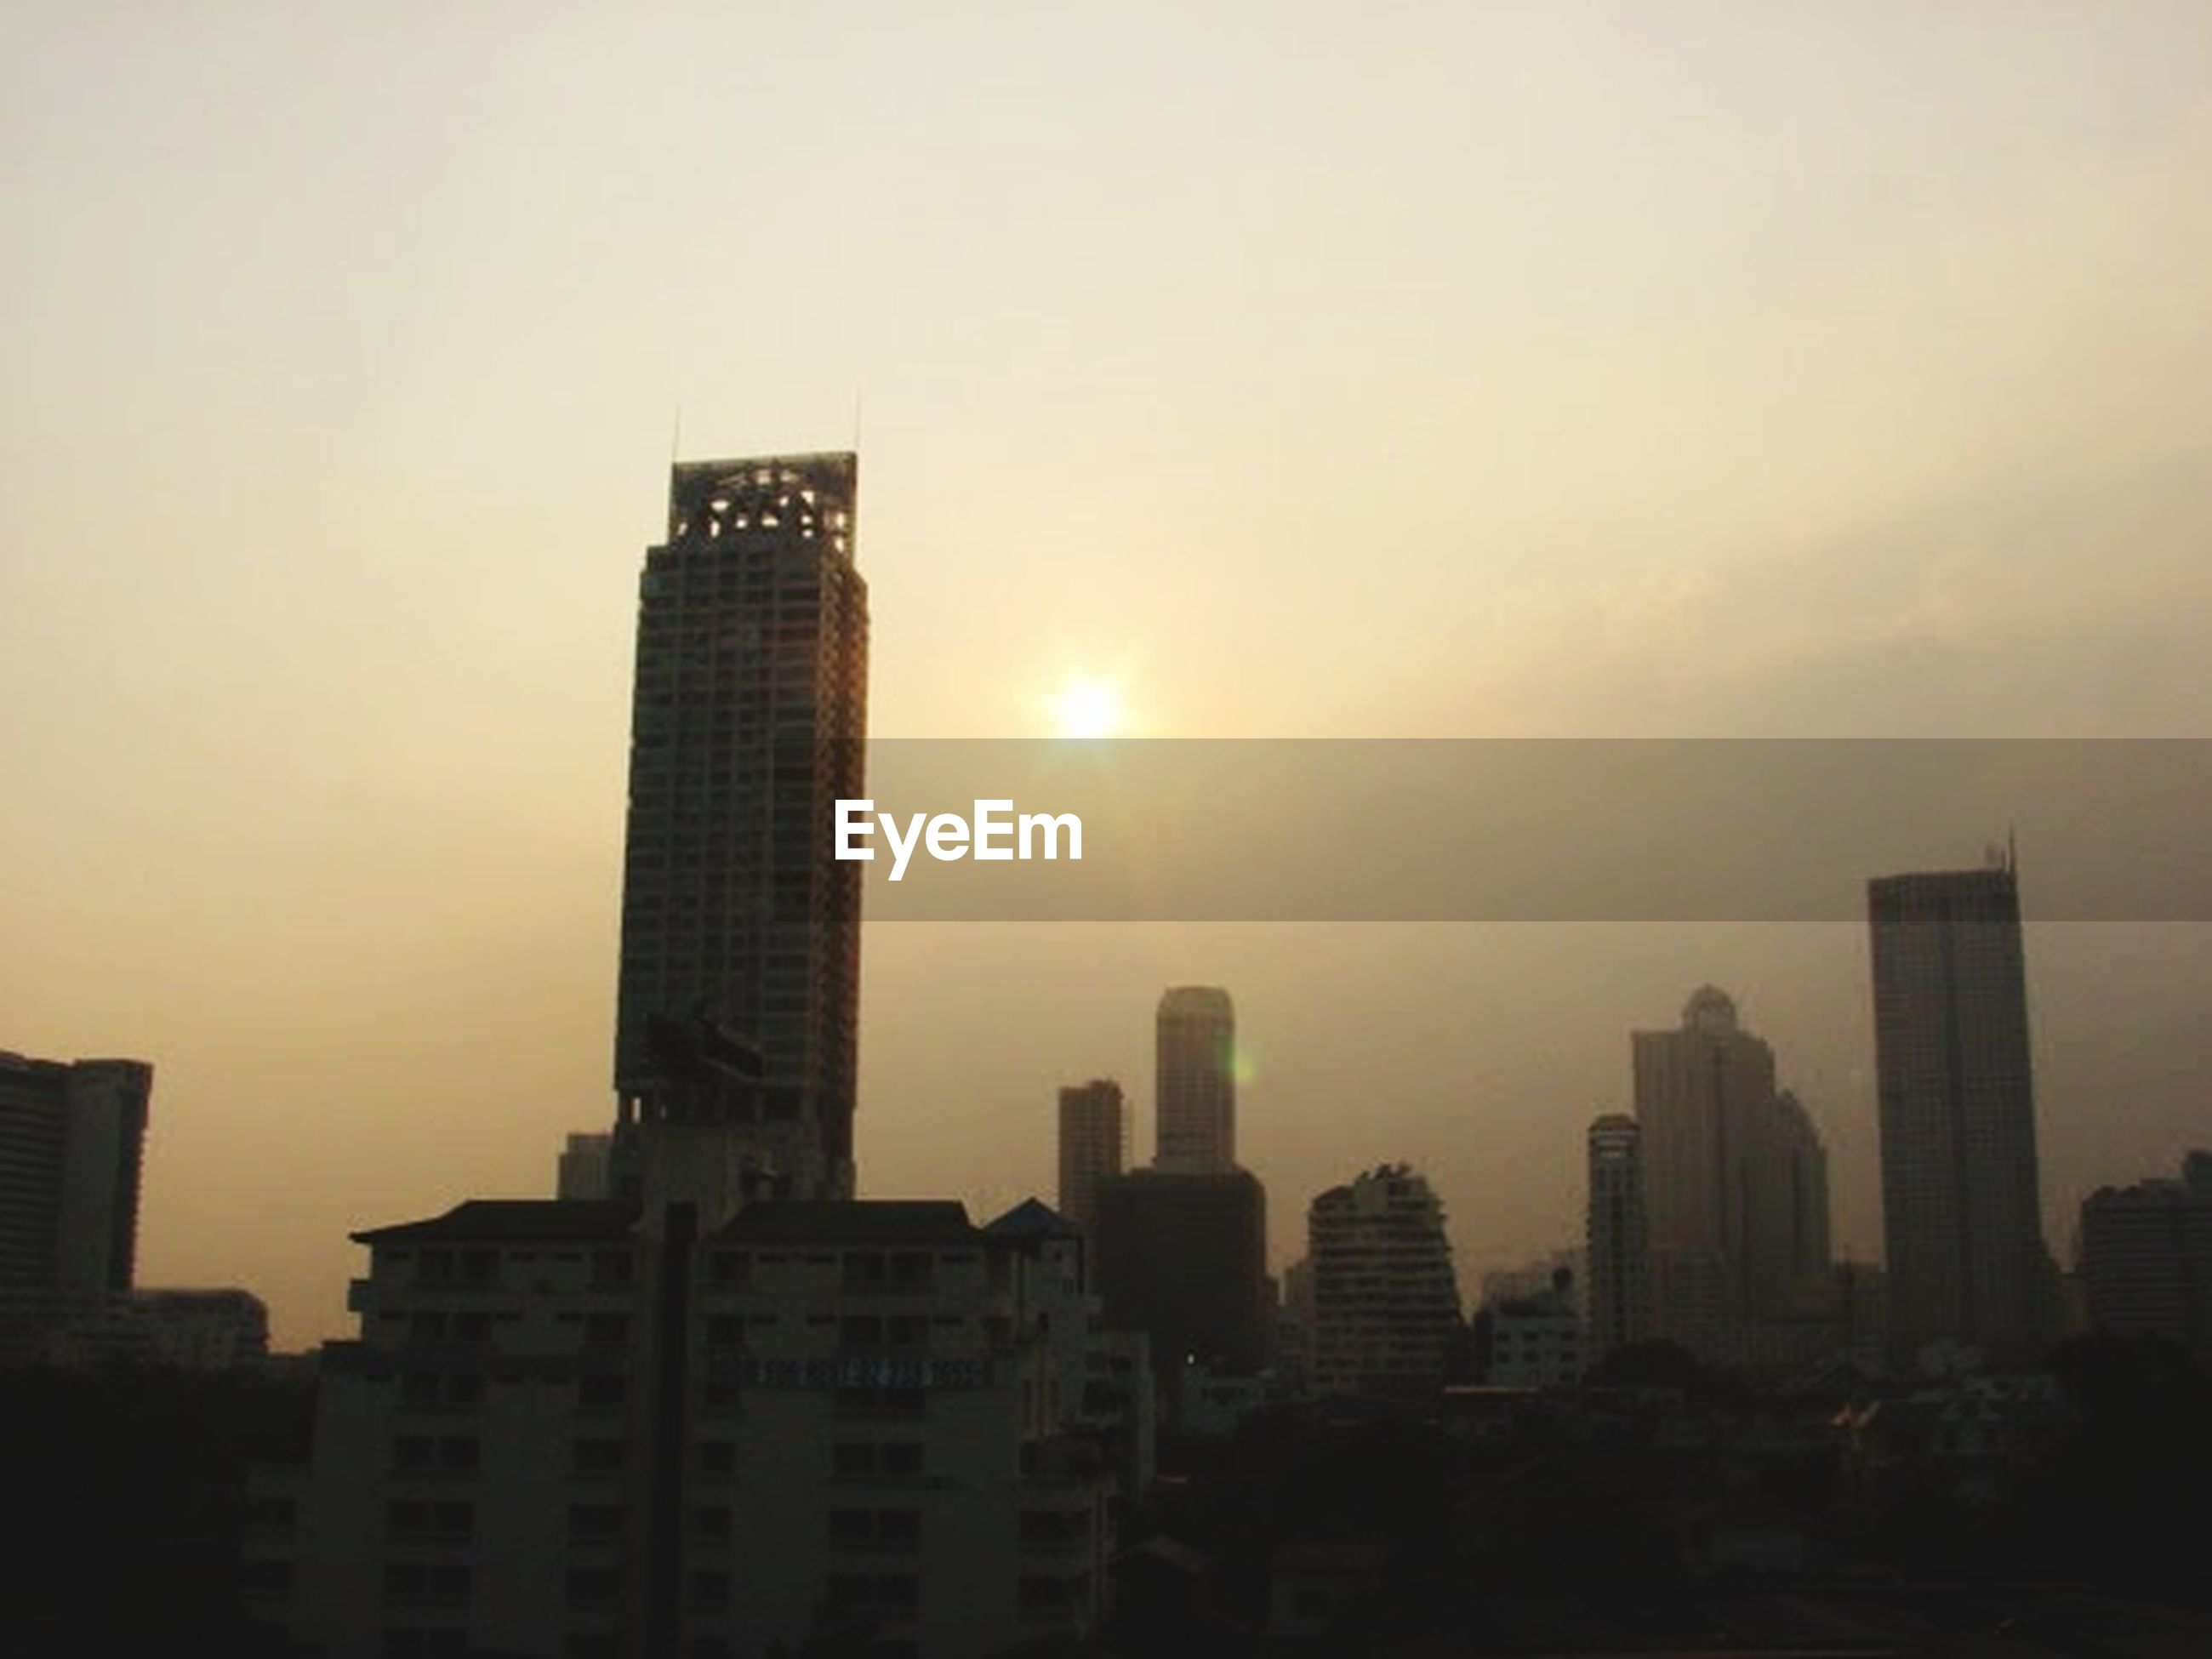 architecture, building exterior, built structure, city, building, skyscraper, office building exterior, sky, tall - high, modern, cityscape, sunset, urban skyline, sun, landscape, tower, nature, city life, residential district, no people, outdoors, financial district, smog